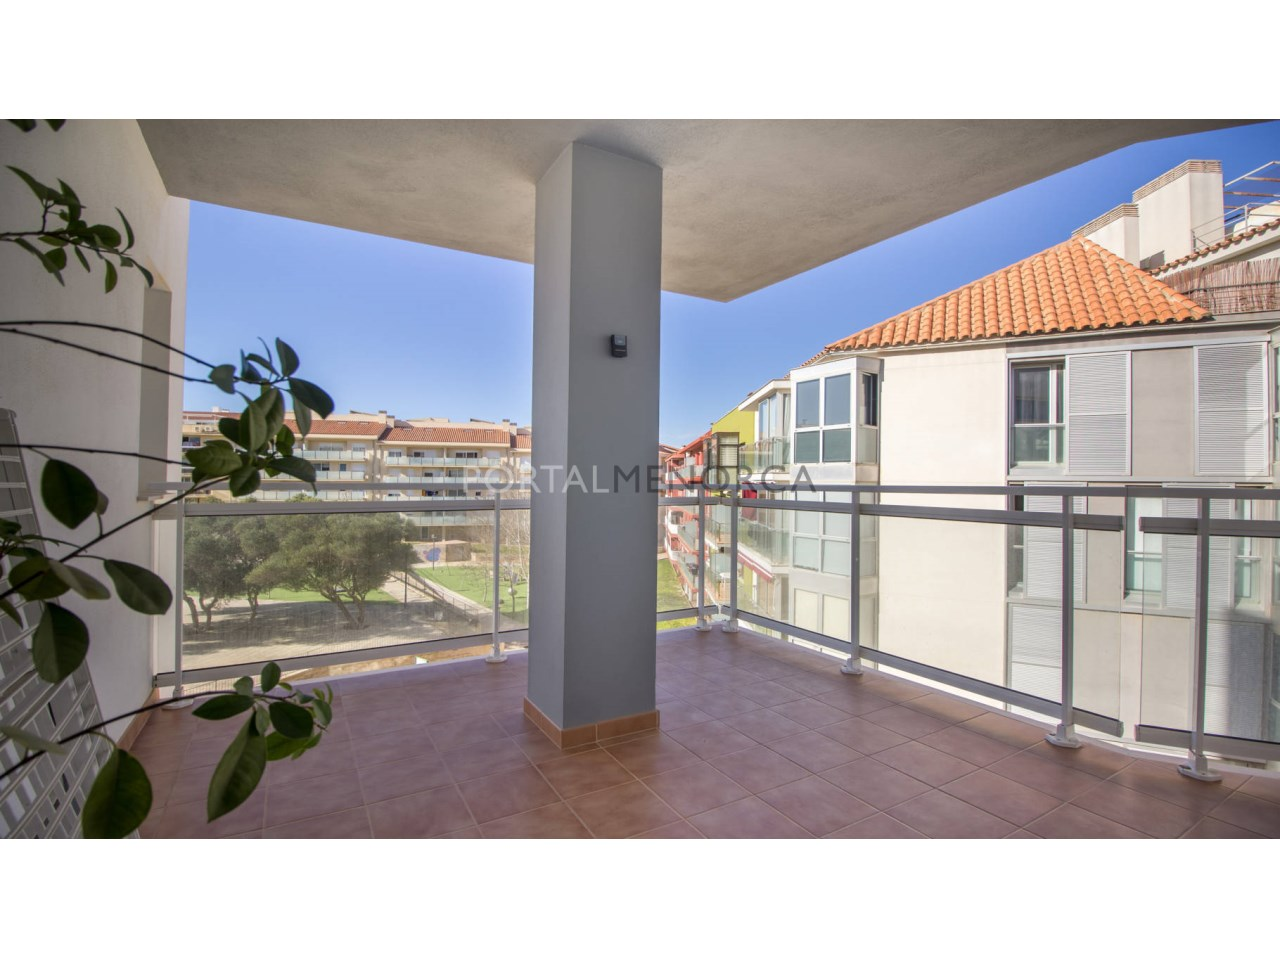 Flat with terrace and parking for sale in Mahón